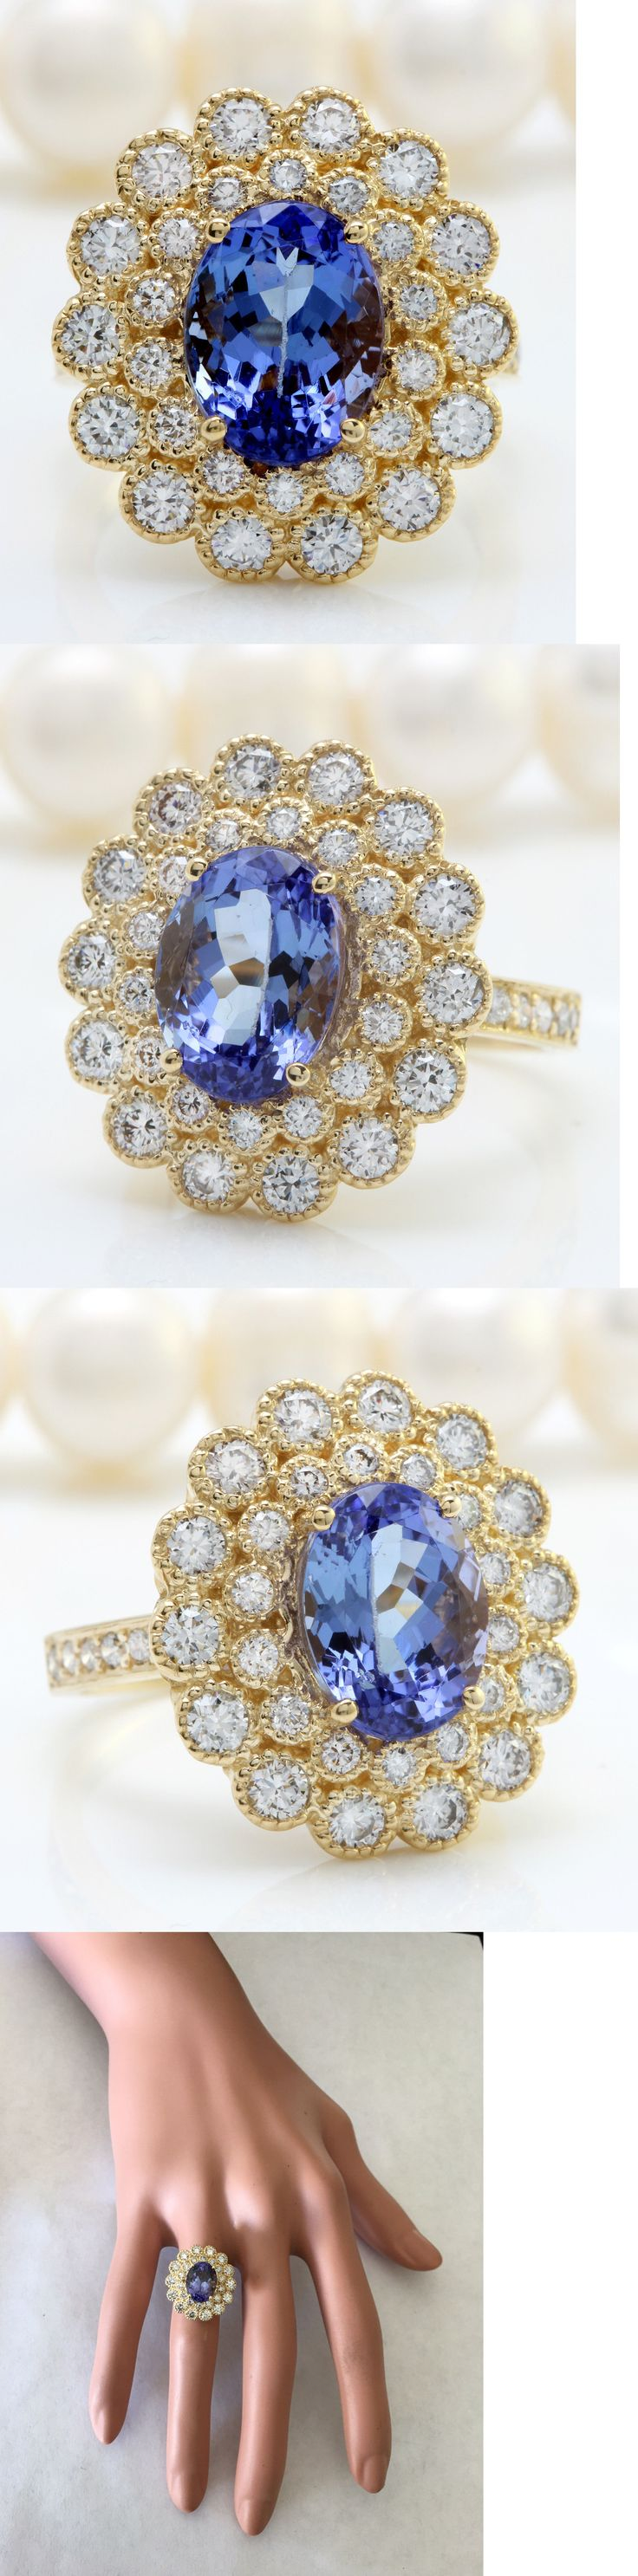 Gemstone 164343: 5.49Ctw Natural Blue Tanzanite And Diamond In 14K Solid Yellow Gold Women Ring -> BUY IT NOW ONLY: $2199 on eBay!